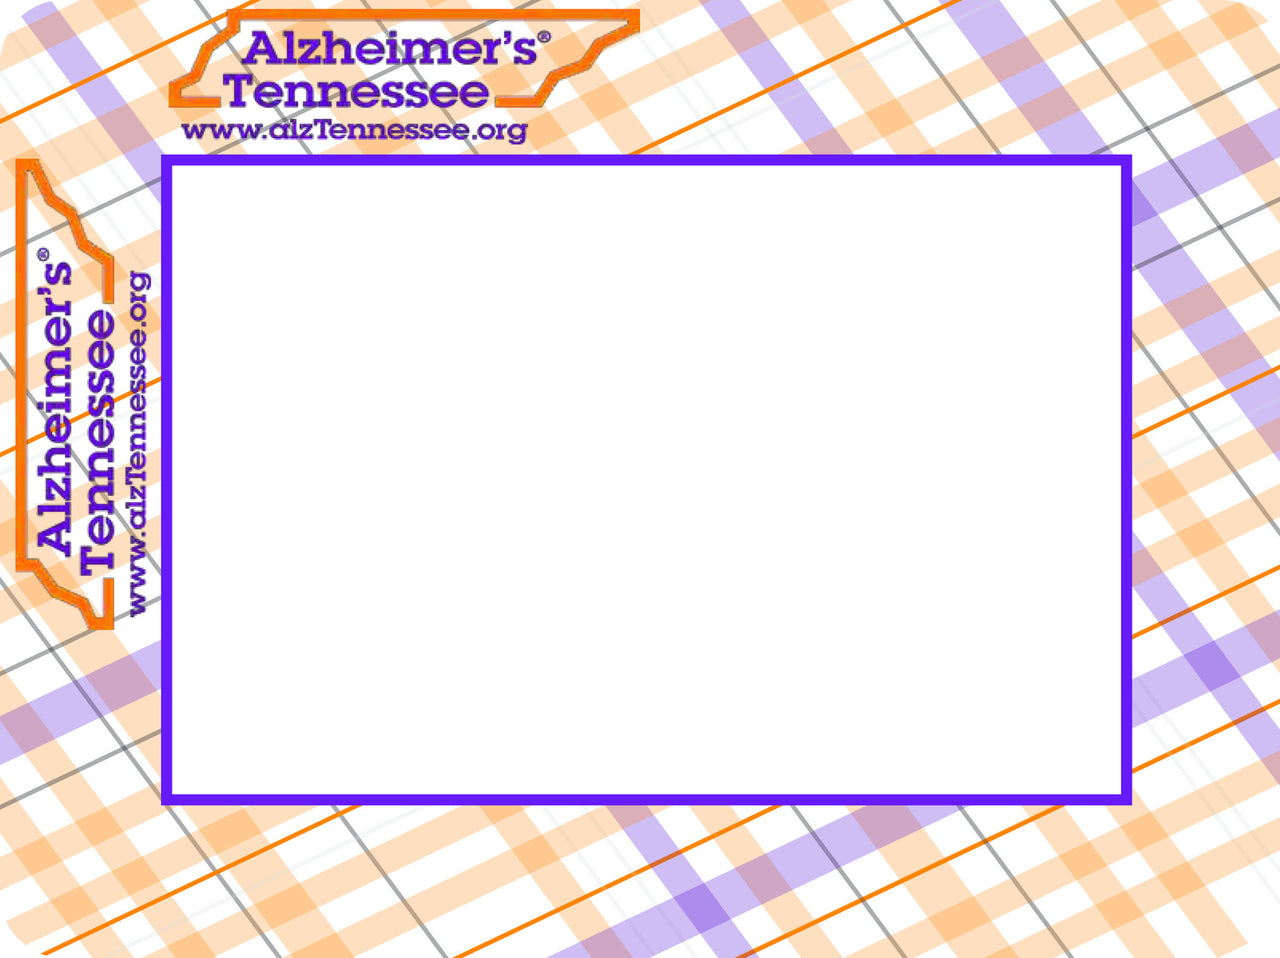 Custom Adhesive Frames for Business Branding - Fodeez® Adhesive Display Frames / Dry Erase Boards  - 2